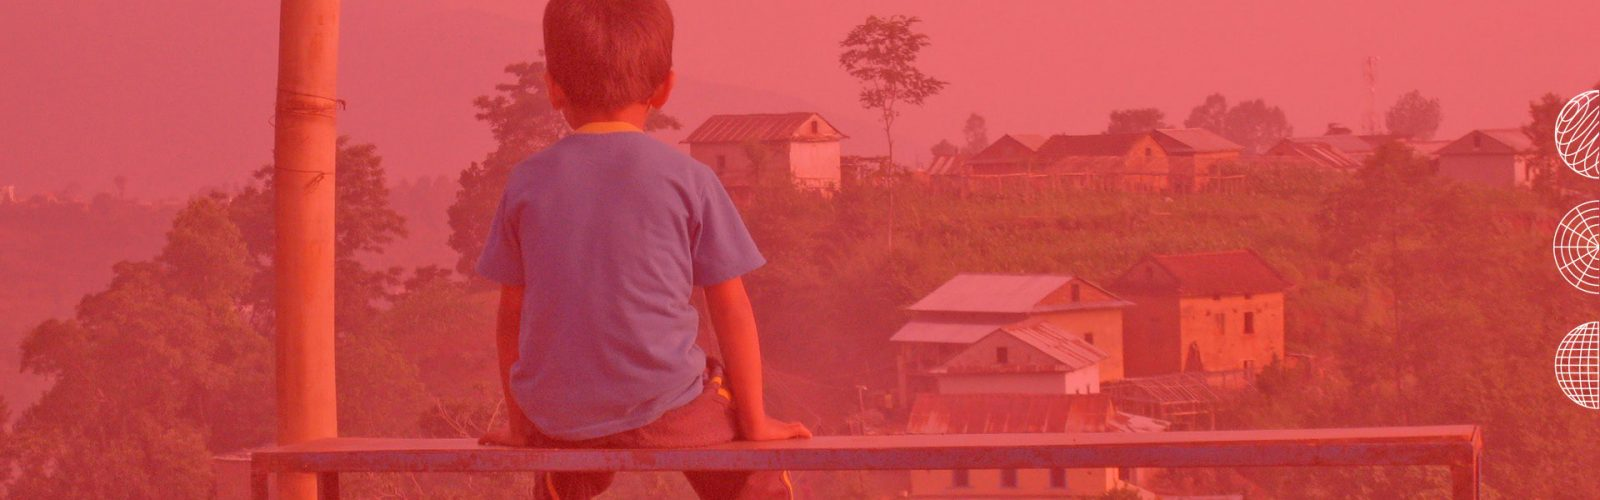 Child looking out at a village